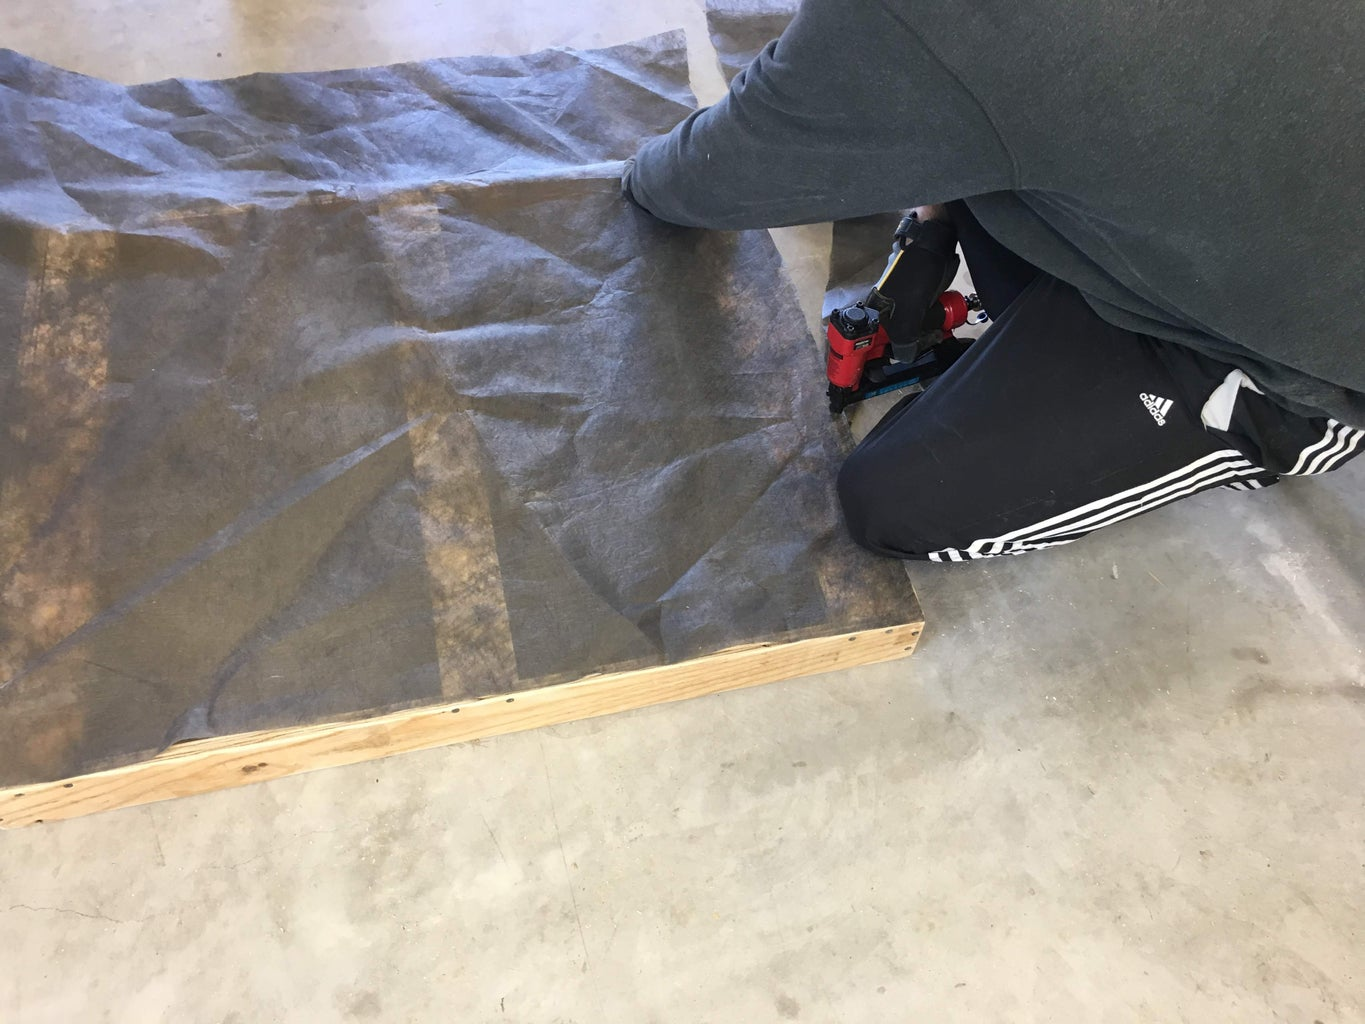 Sanding and Attaching the Landscaping Fabric